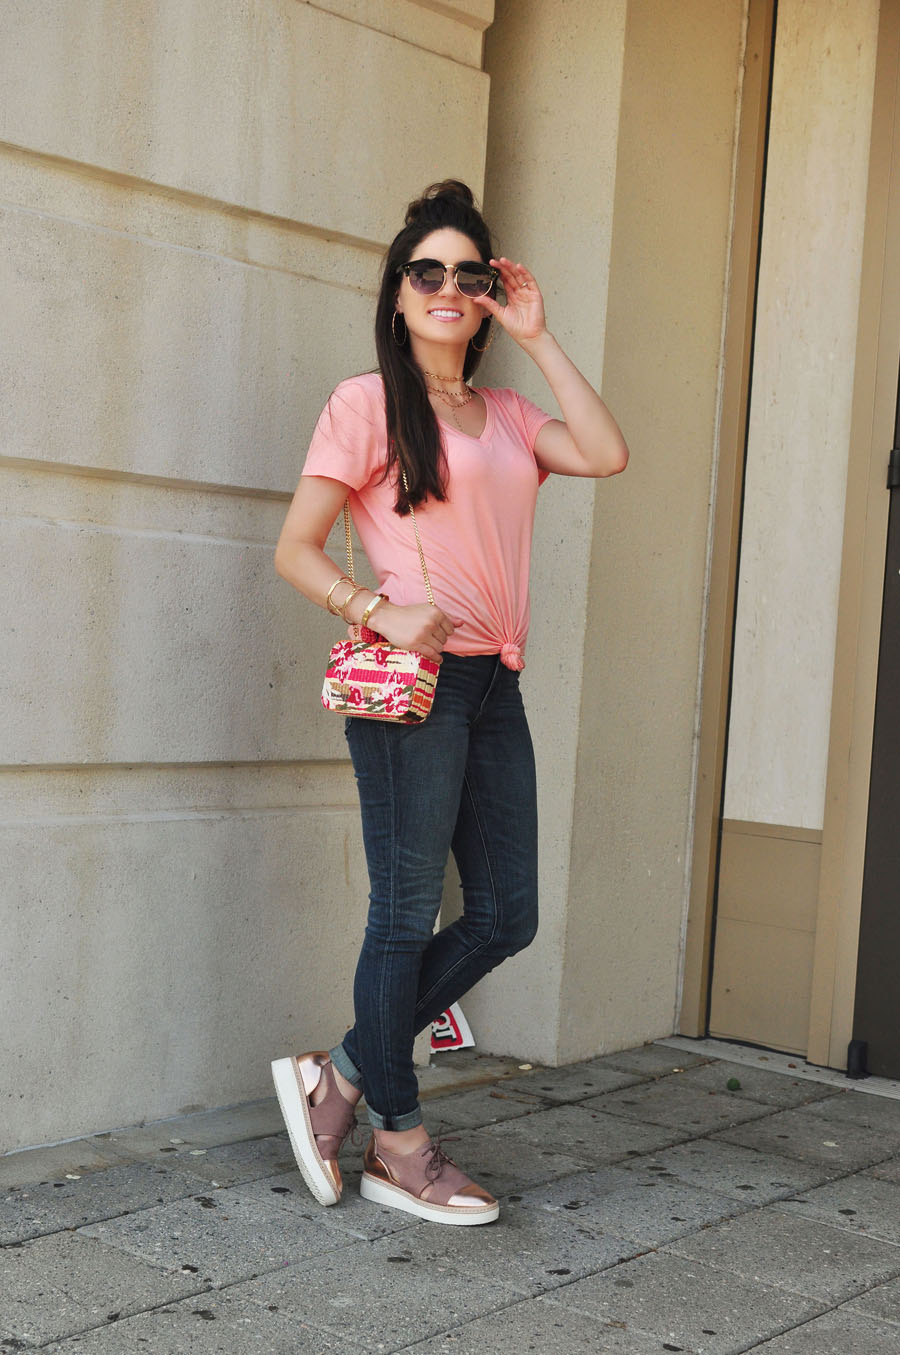 Oxfords, Jeans & Tees - Basic Summer Style - Erica Valentin - Atlanta Style Blogger